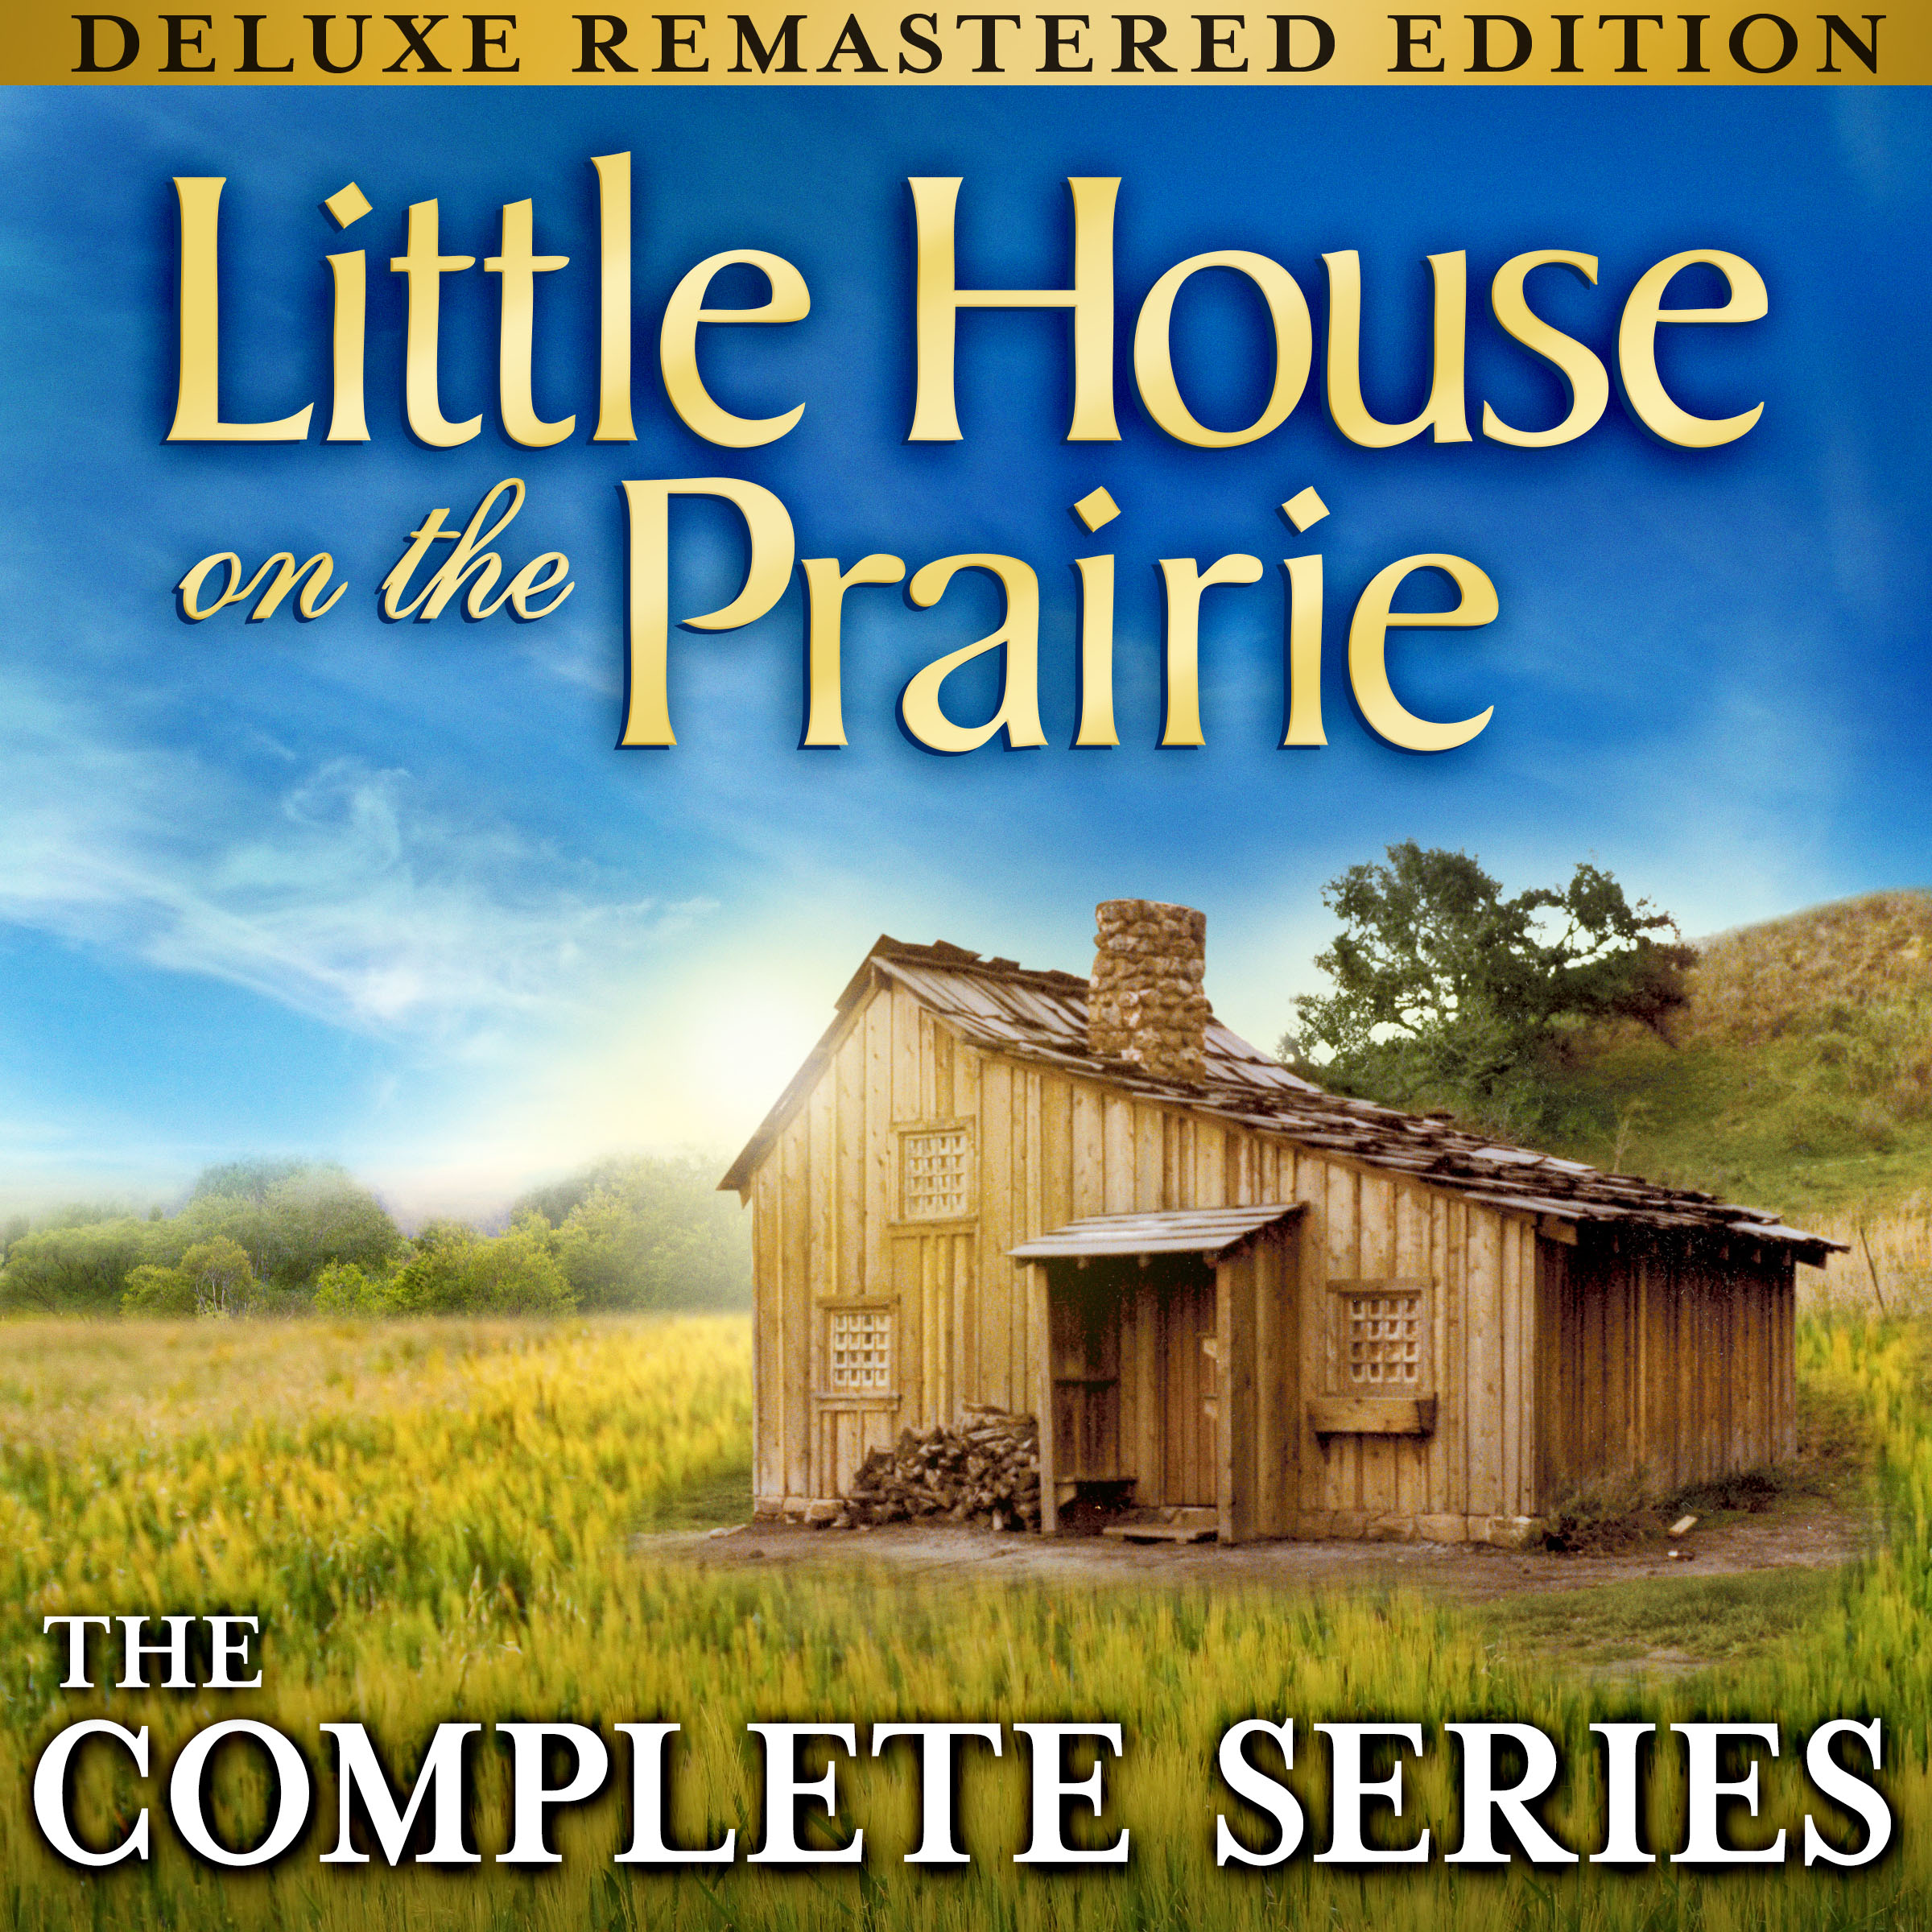 Little House on the Prairie Deluxe Remastered Edition